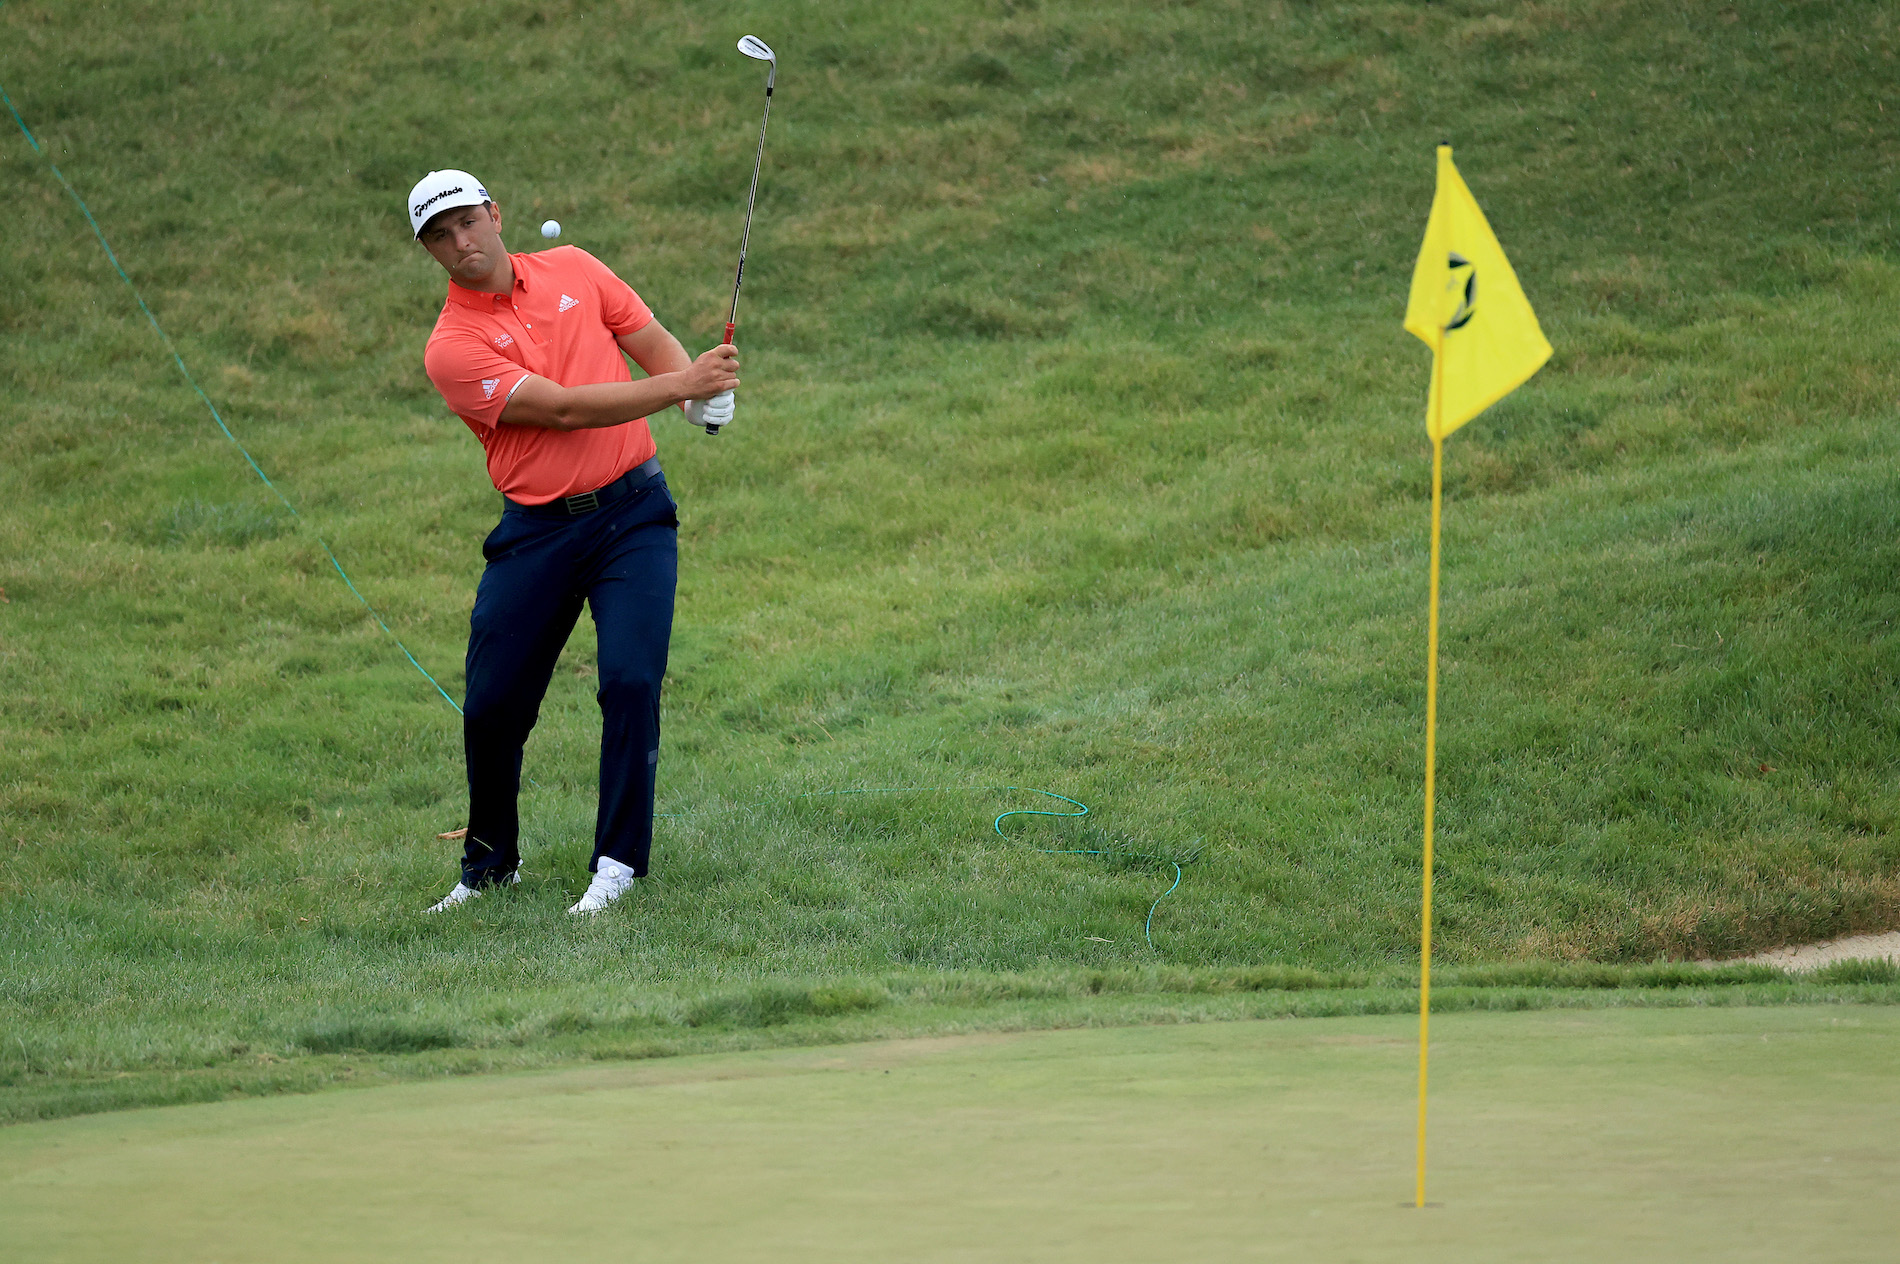 When Jon Rahm was assessed a two-stroke penalty Sunday for moving his ball a millimeter, one unlucky bettor lost $150,000.